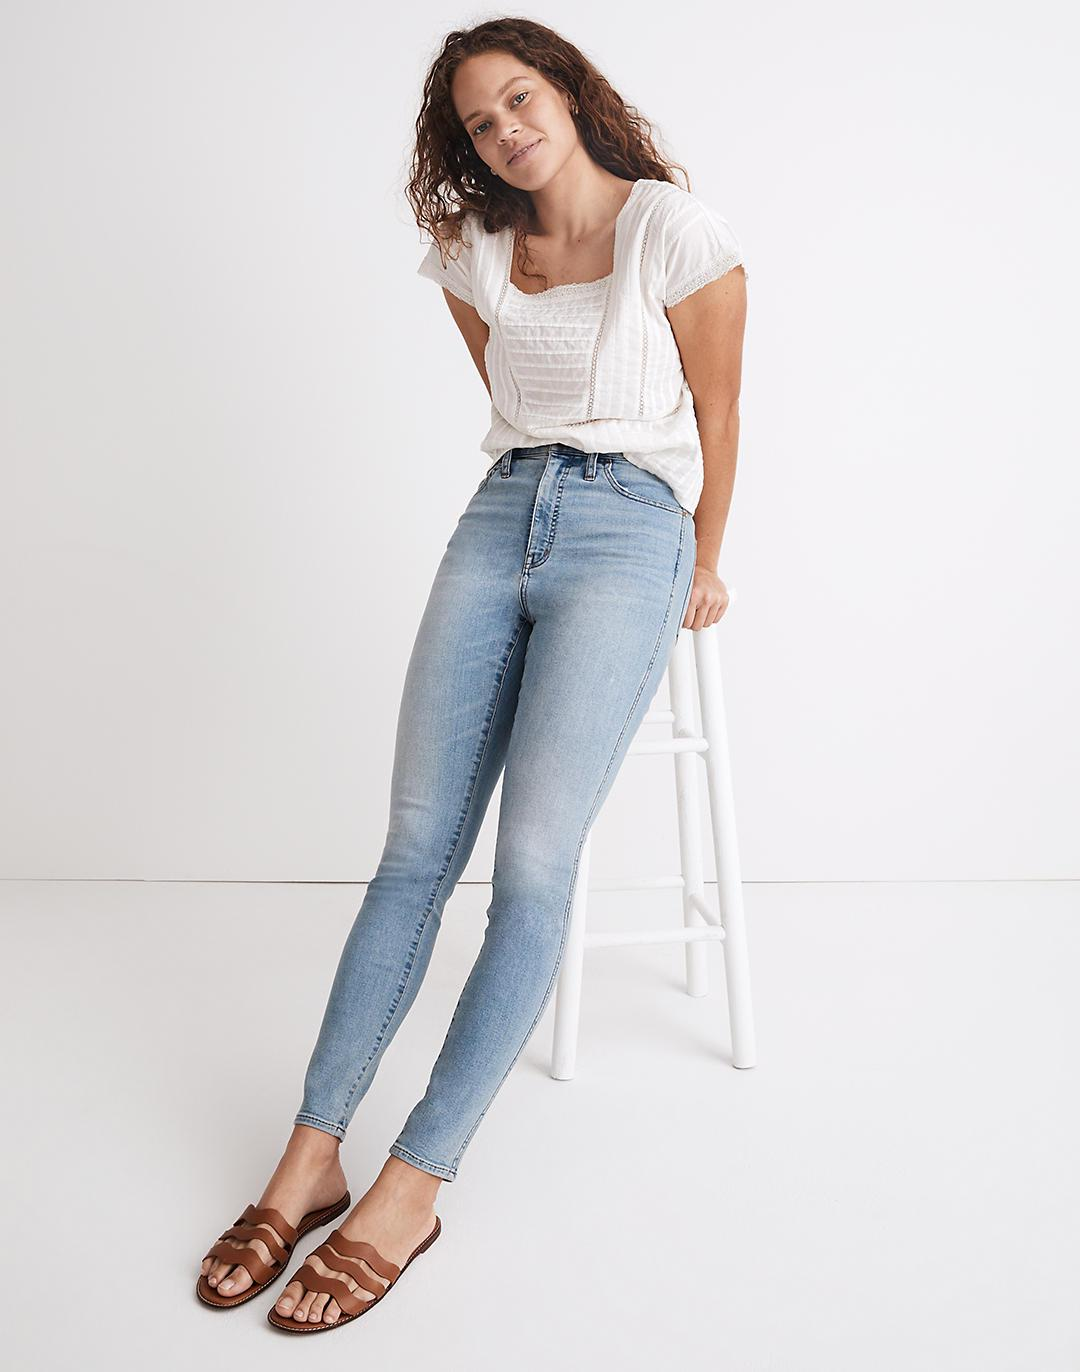 Curvy Roadtripper Authentic Jeans in Cadwell Wash